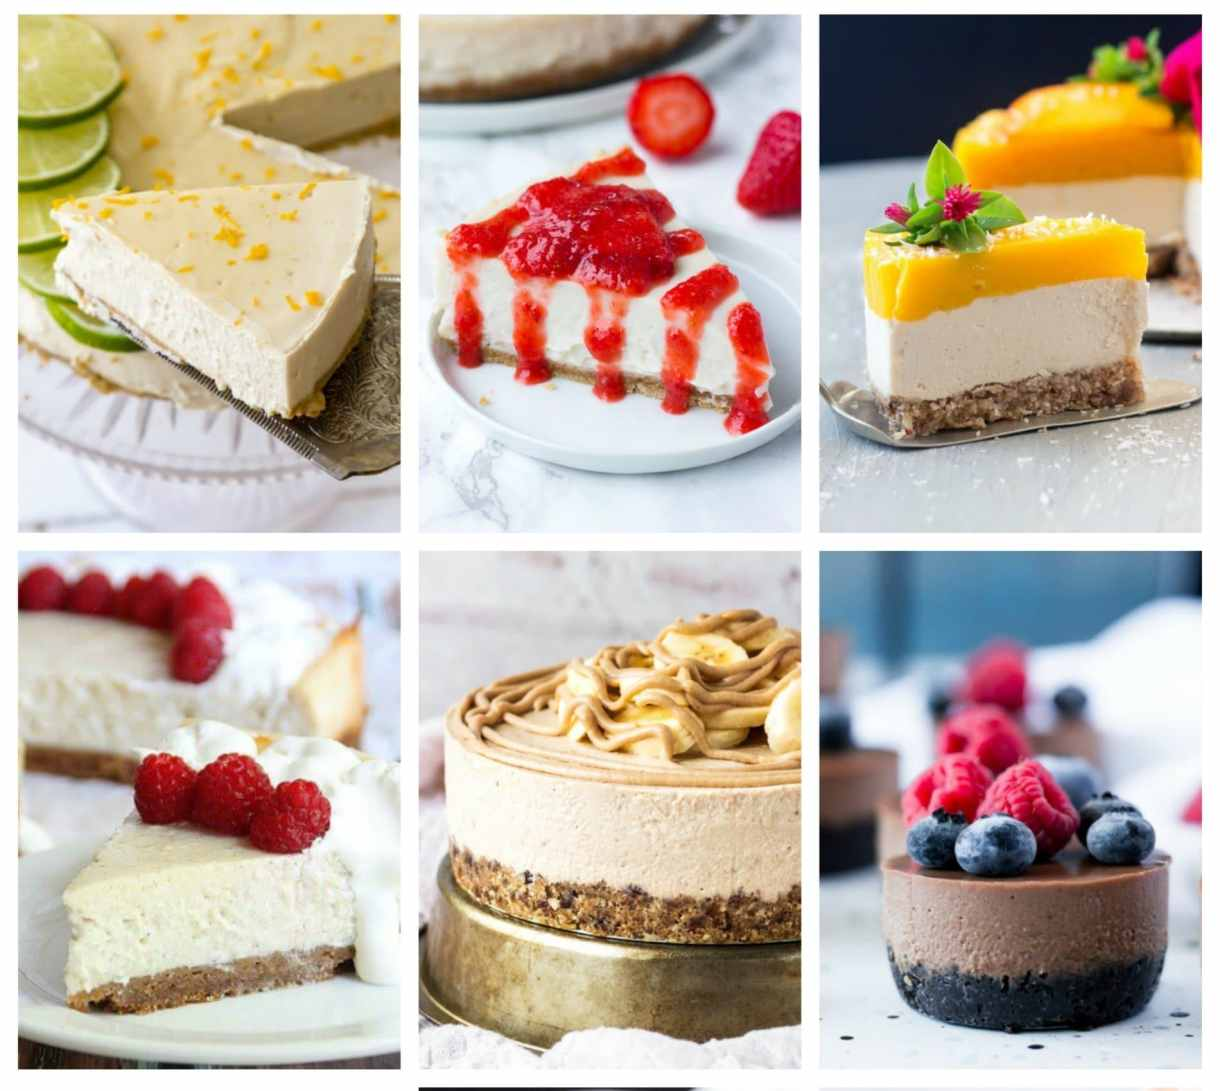 20 Dreamy Vegan Cheesecakes That We Just Can't Resist 1